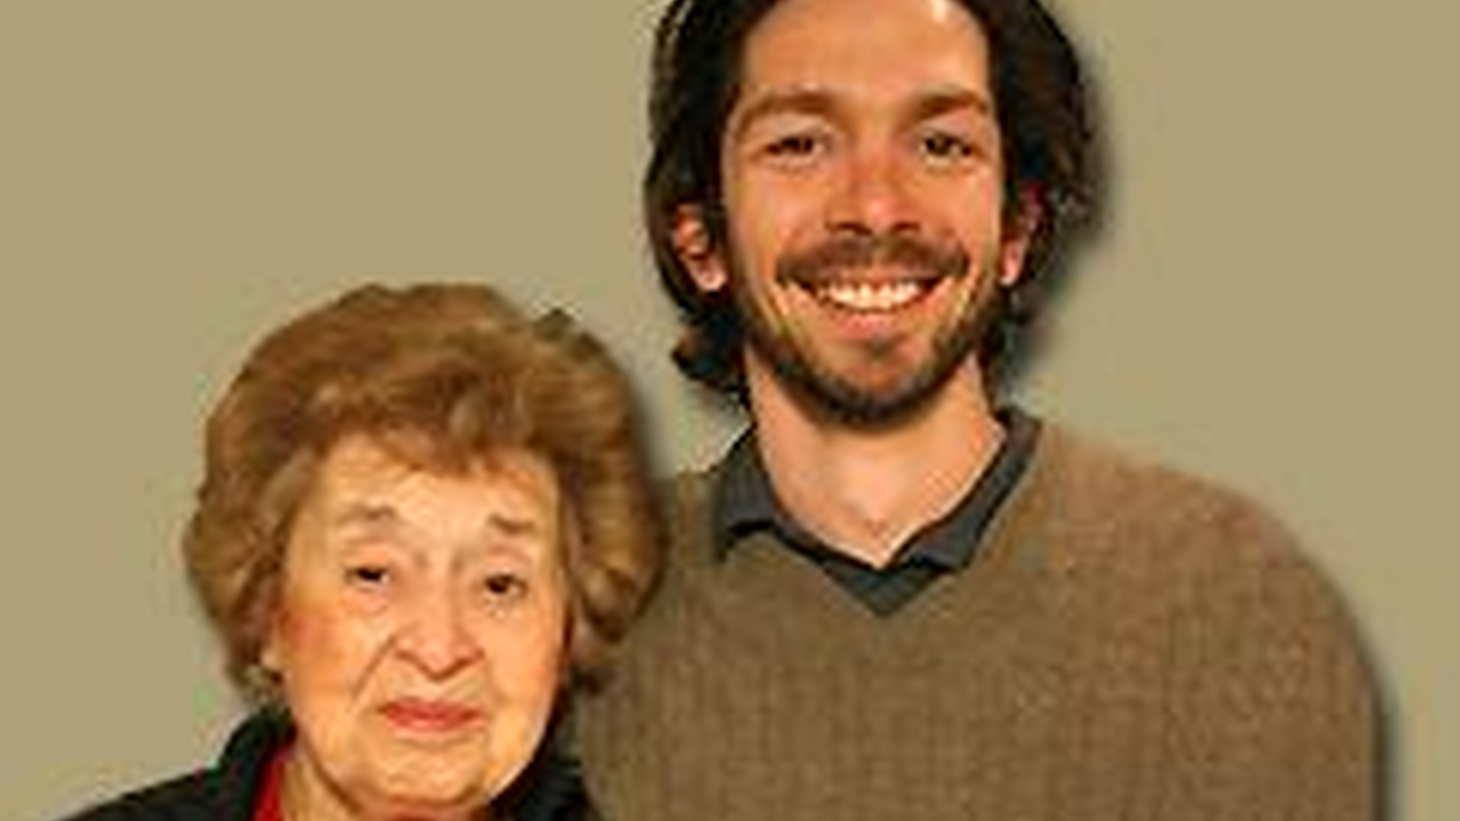 KCRW's own Daniel Konecky interviews his 93-year-old grandmother Rose Halprin.